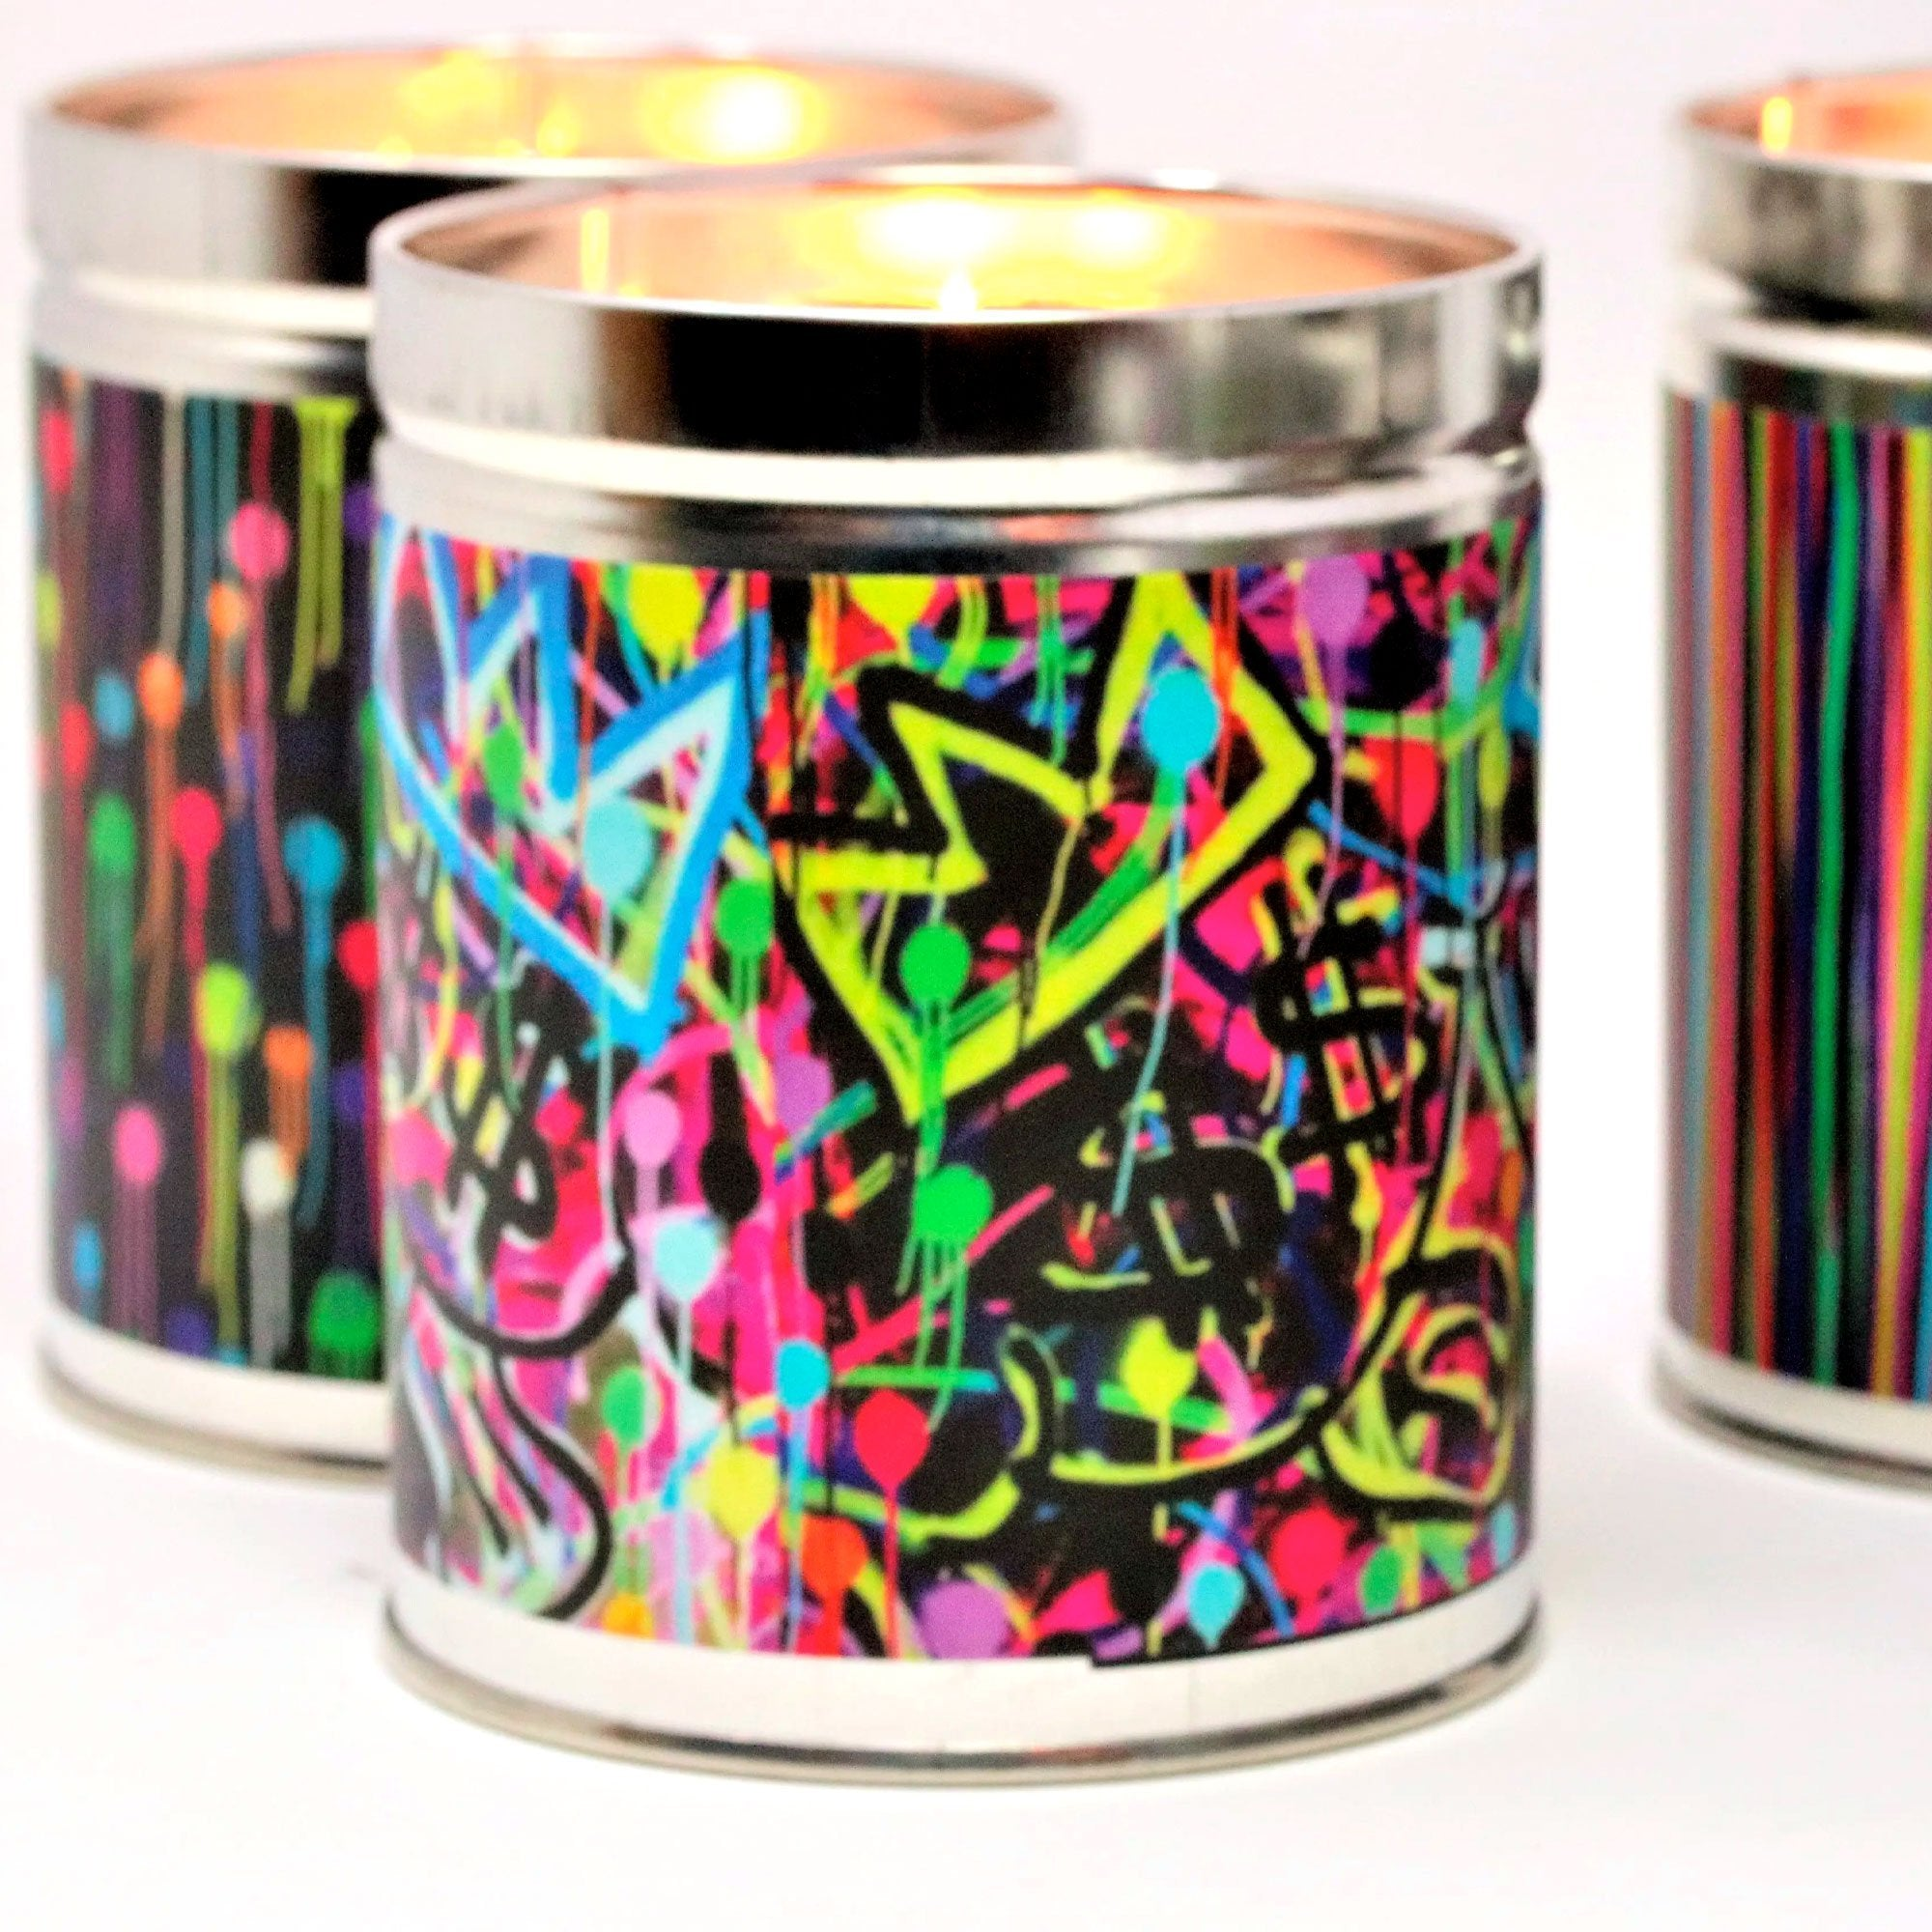 fisher-couture-com-Thompson Ferrier-Moneybags Singer22 pop art candle featuring Jean-Michel Basquiat's crown